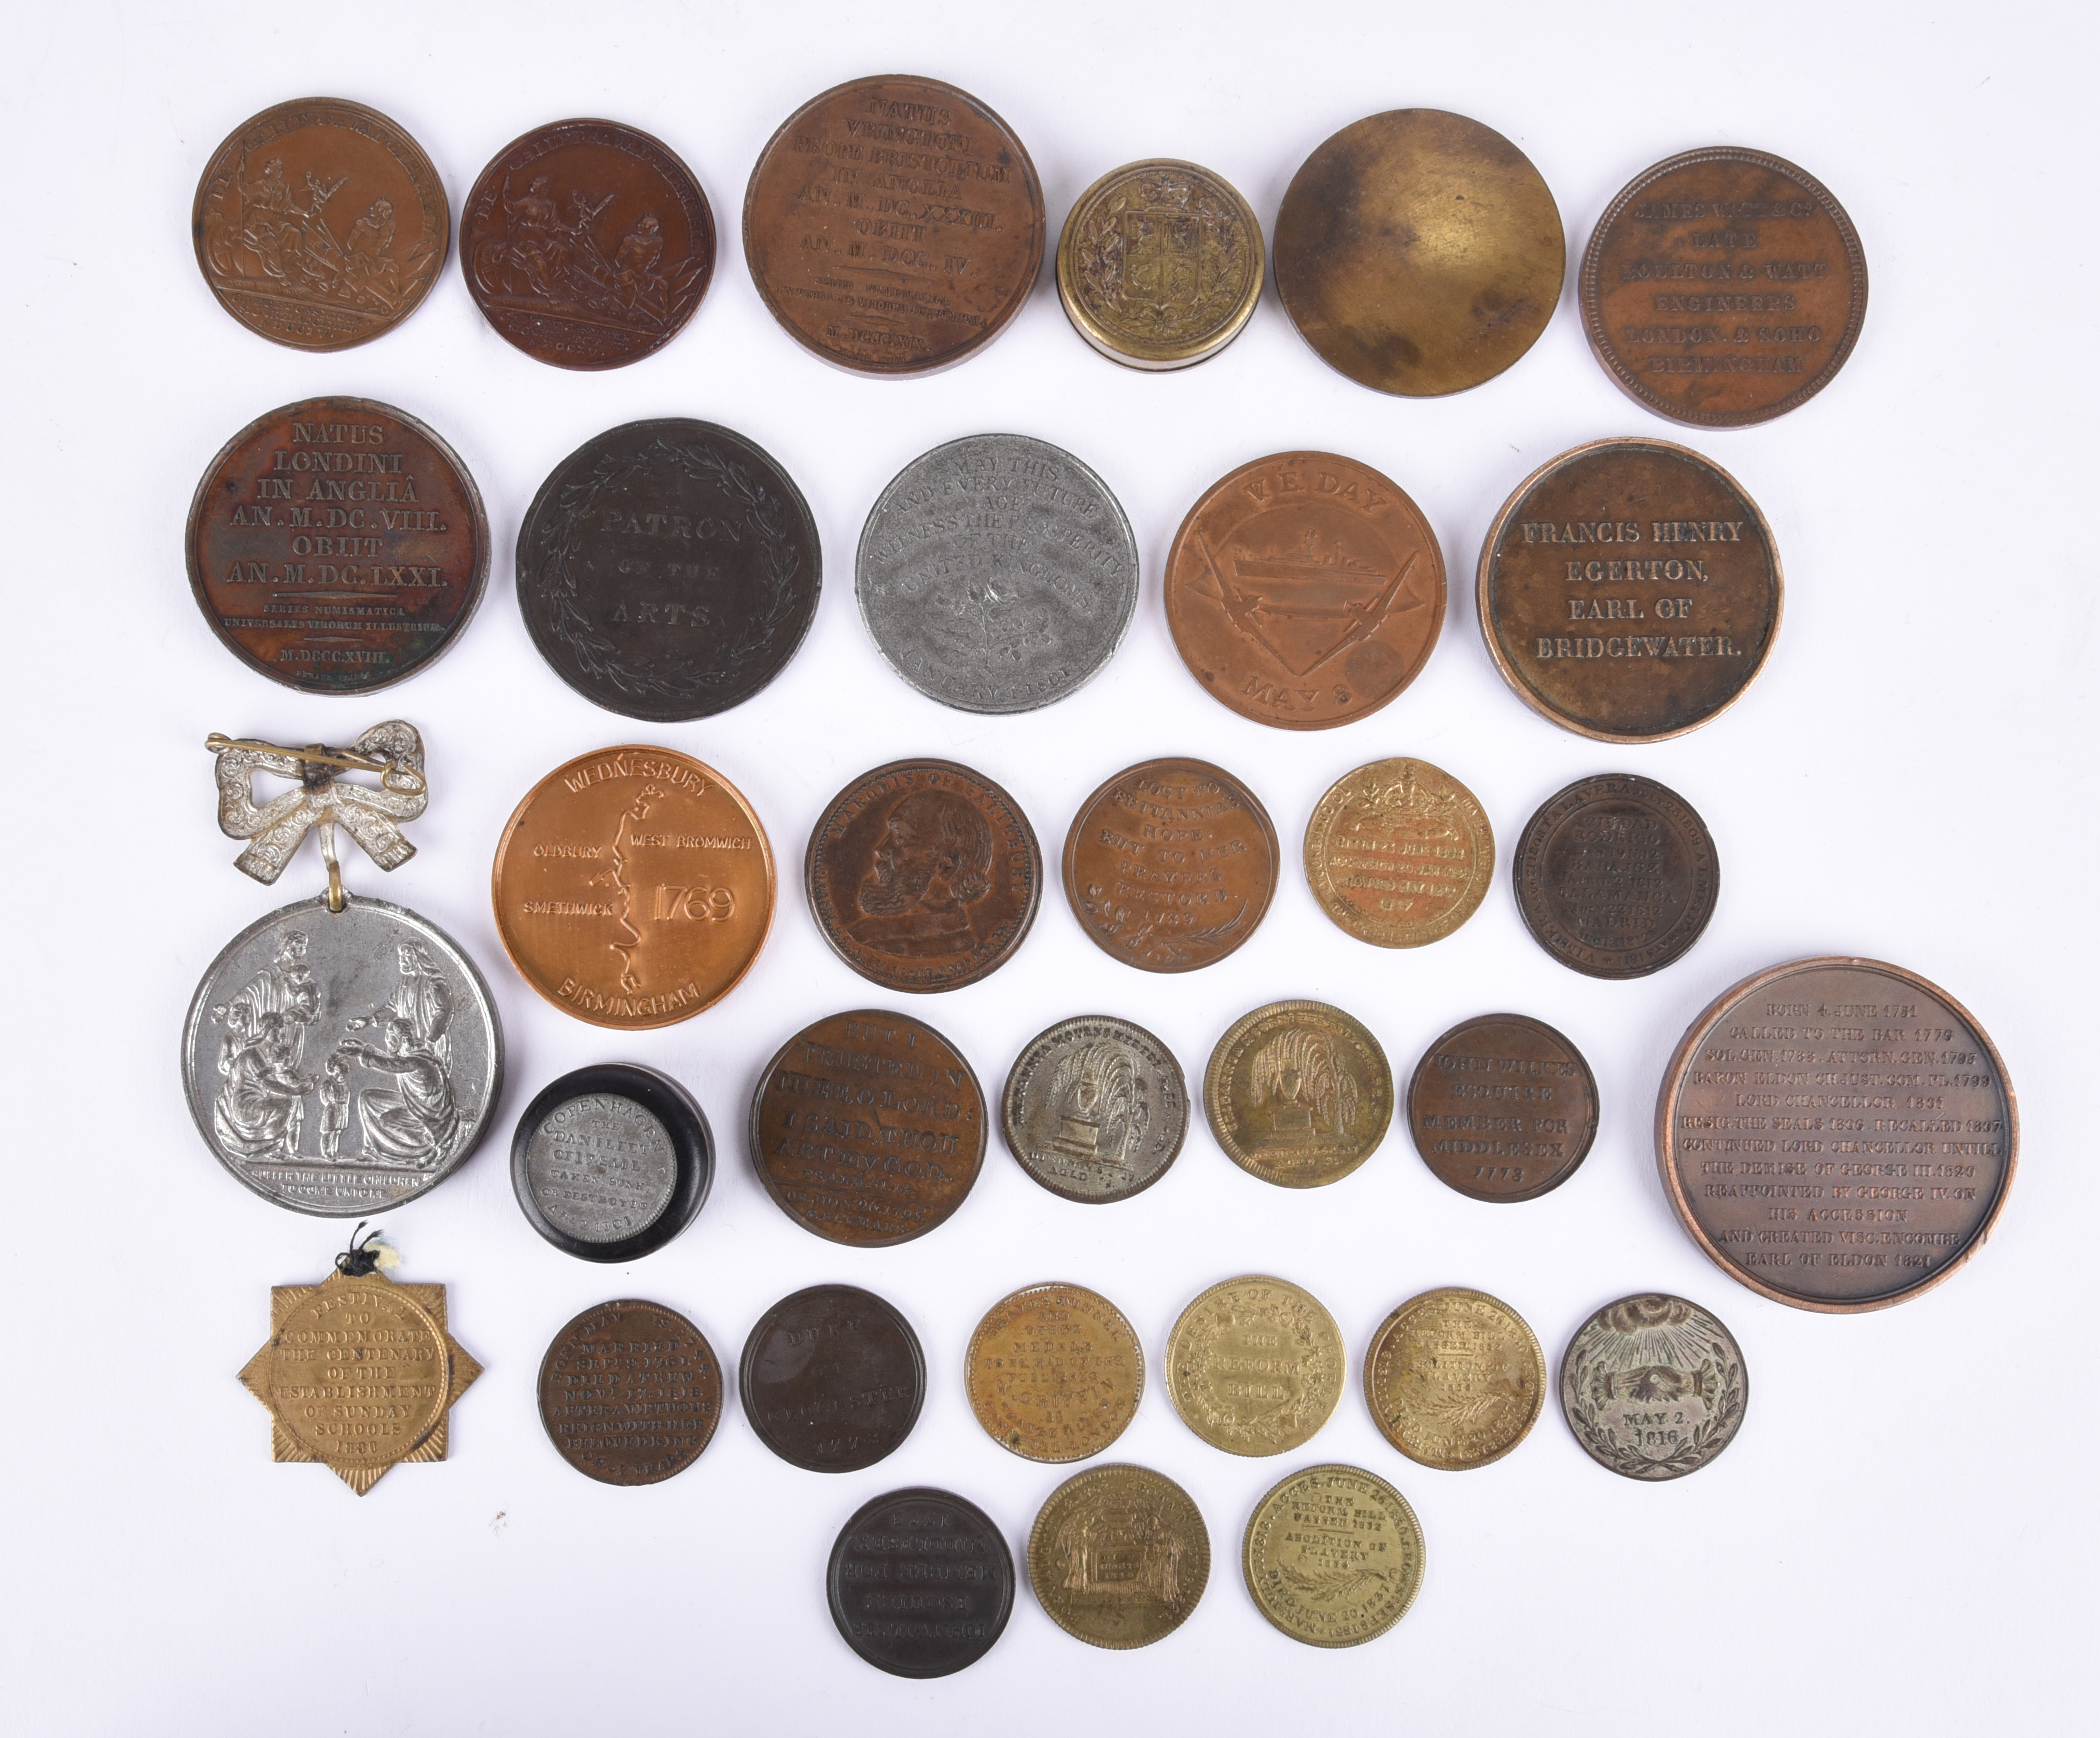 A small quantity of historican medals and associated items, including: Anne: Battle of Blenheim 1704 - Image 2 of 2